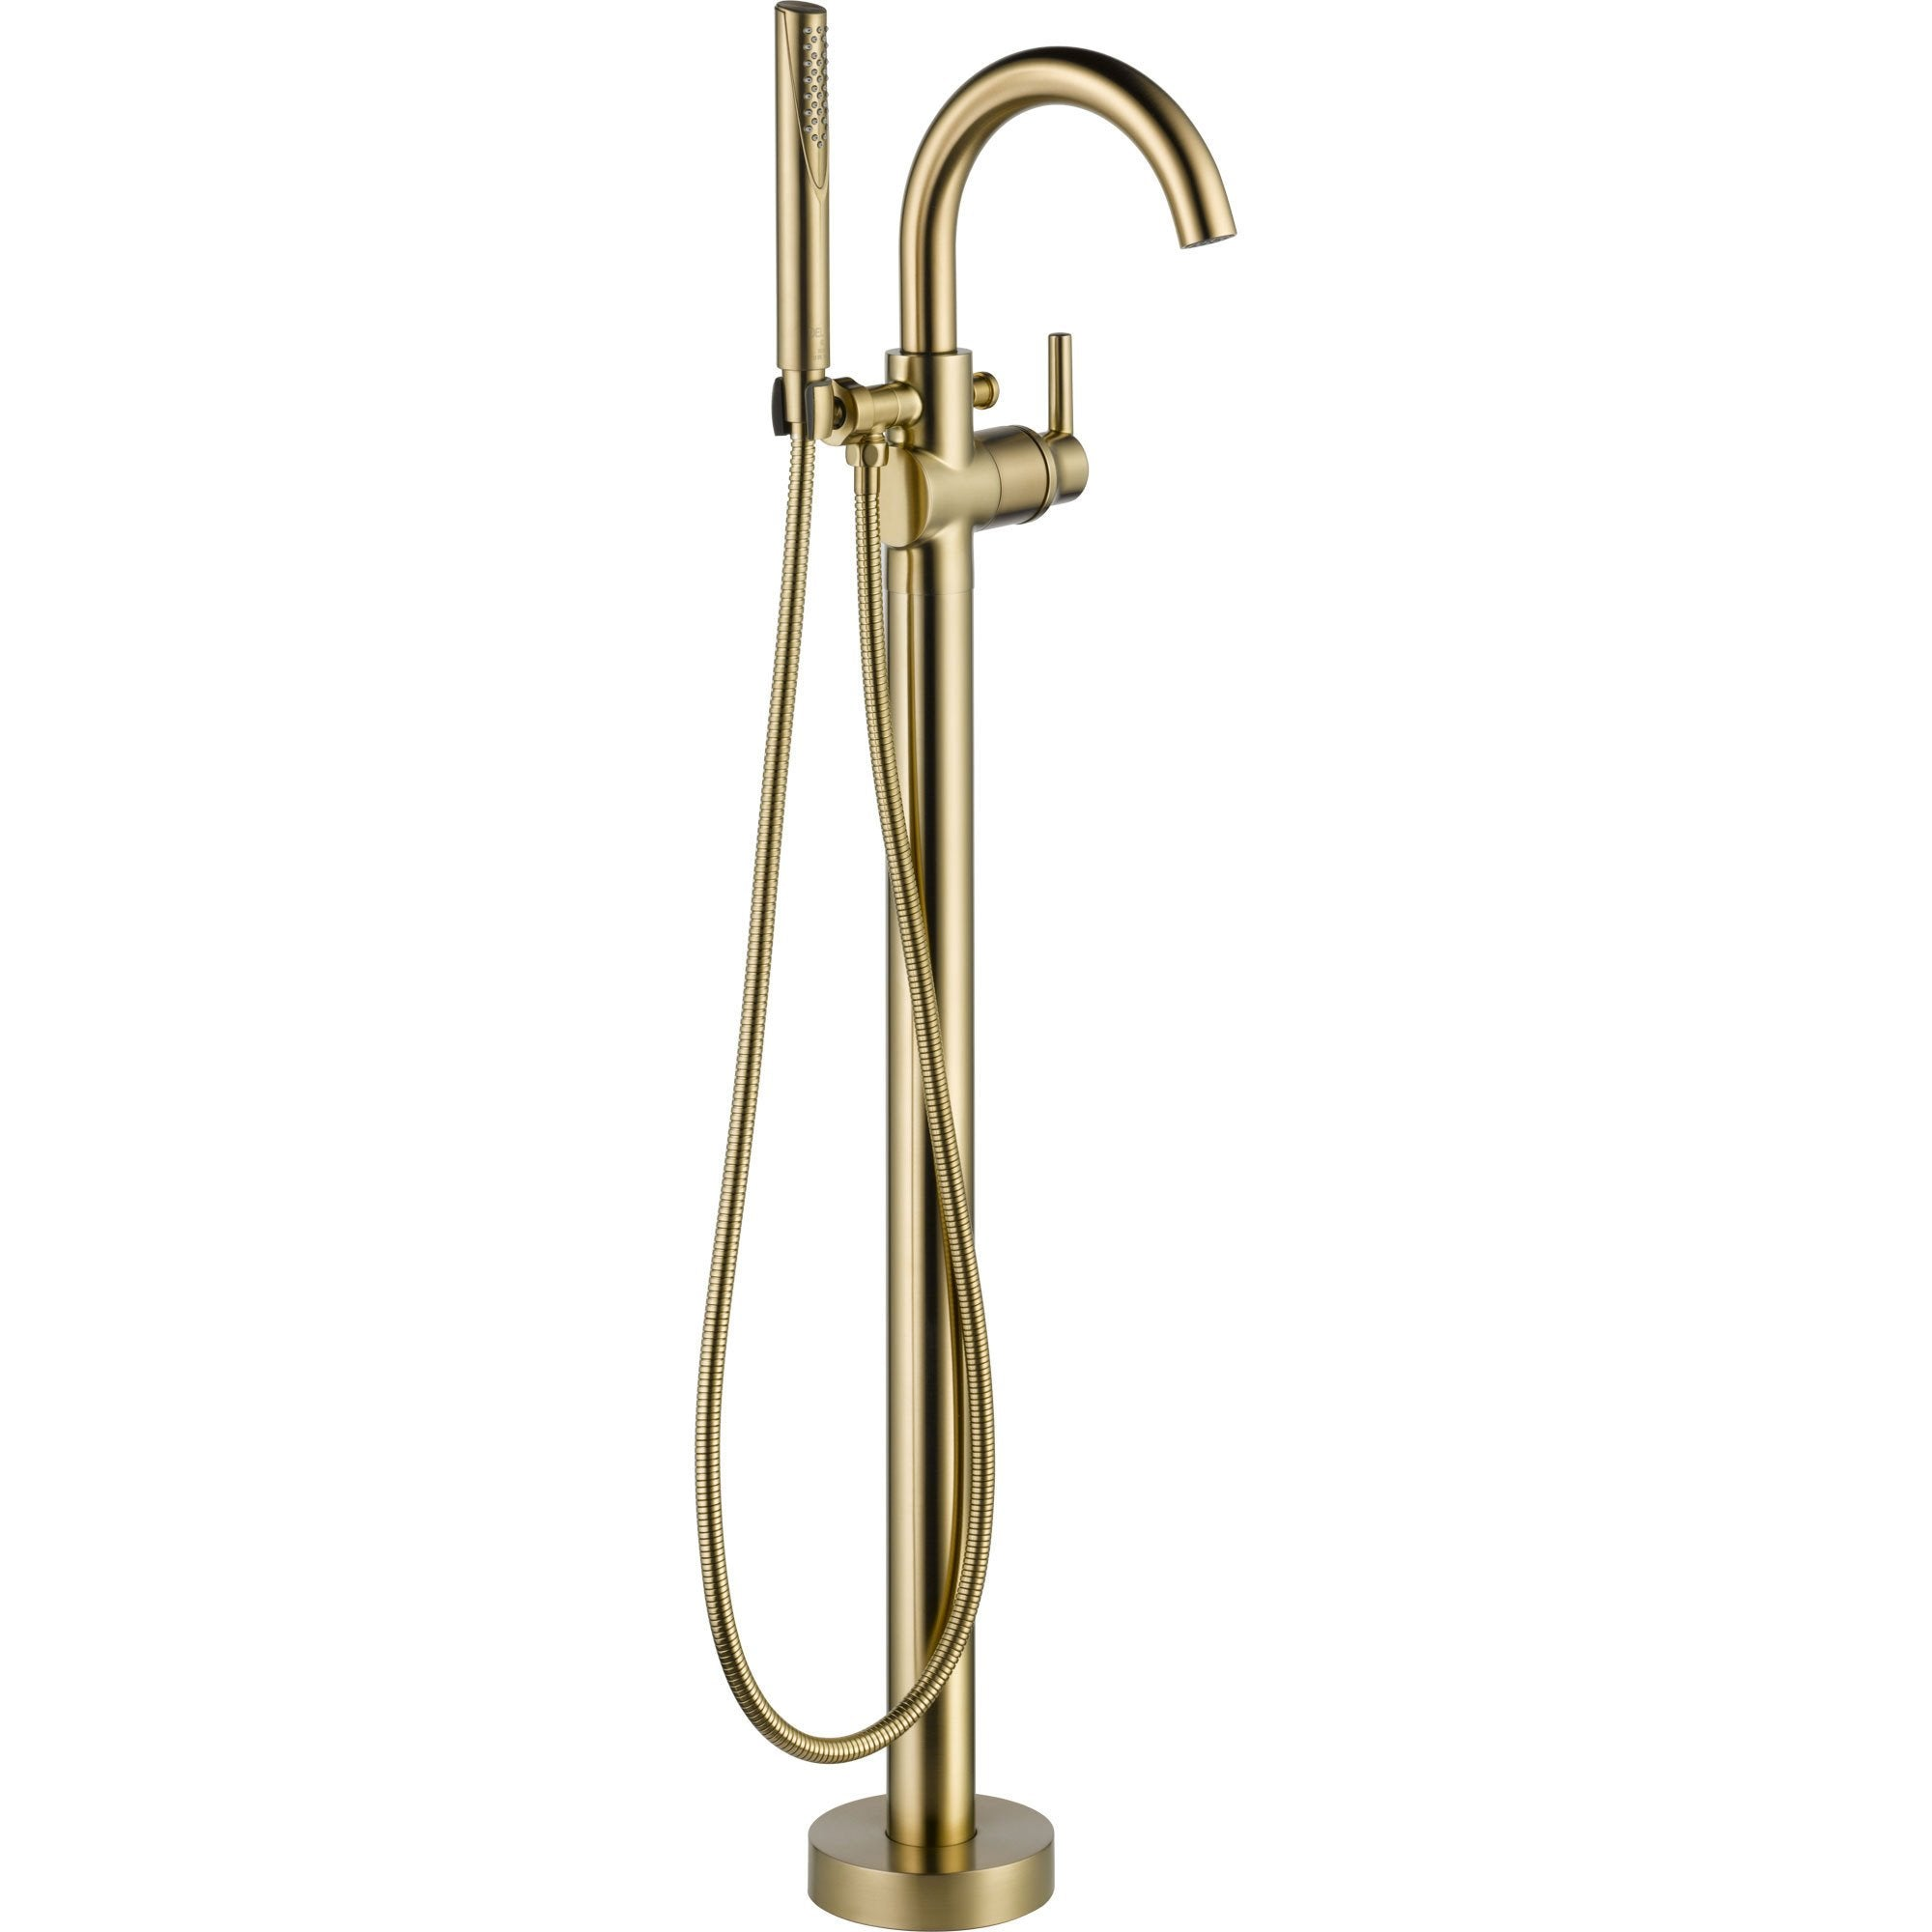 Delta Trinsic Champagne Bronze Floor Mount Freestanding Tub Filler Trim 637071